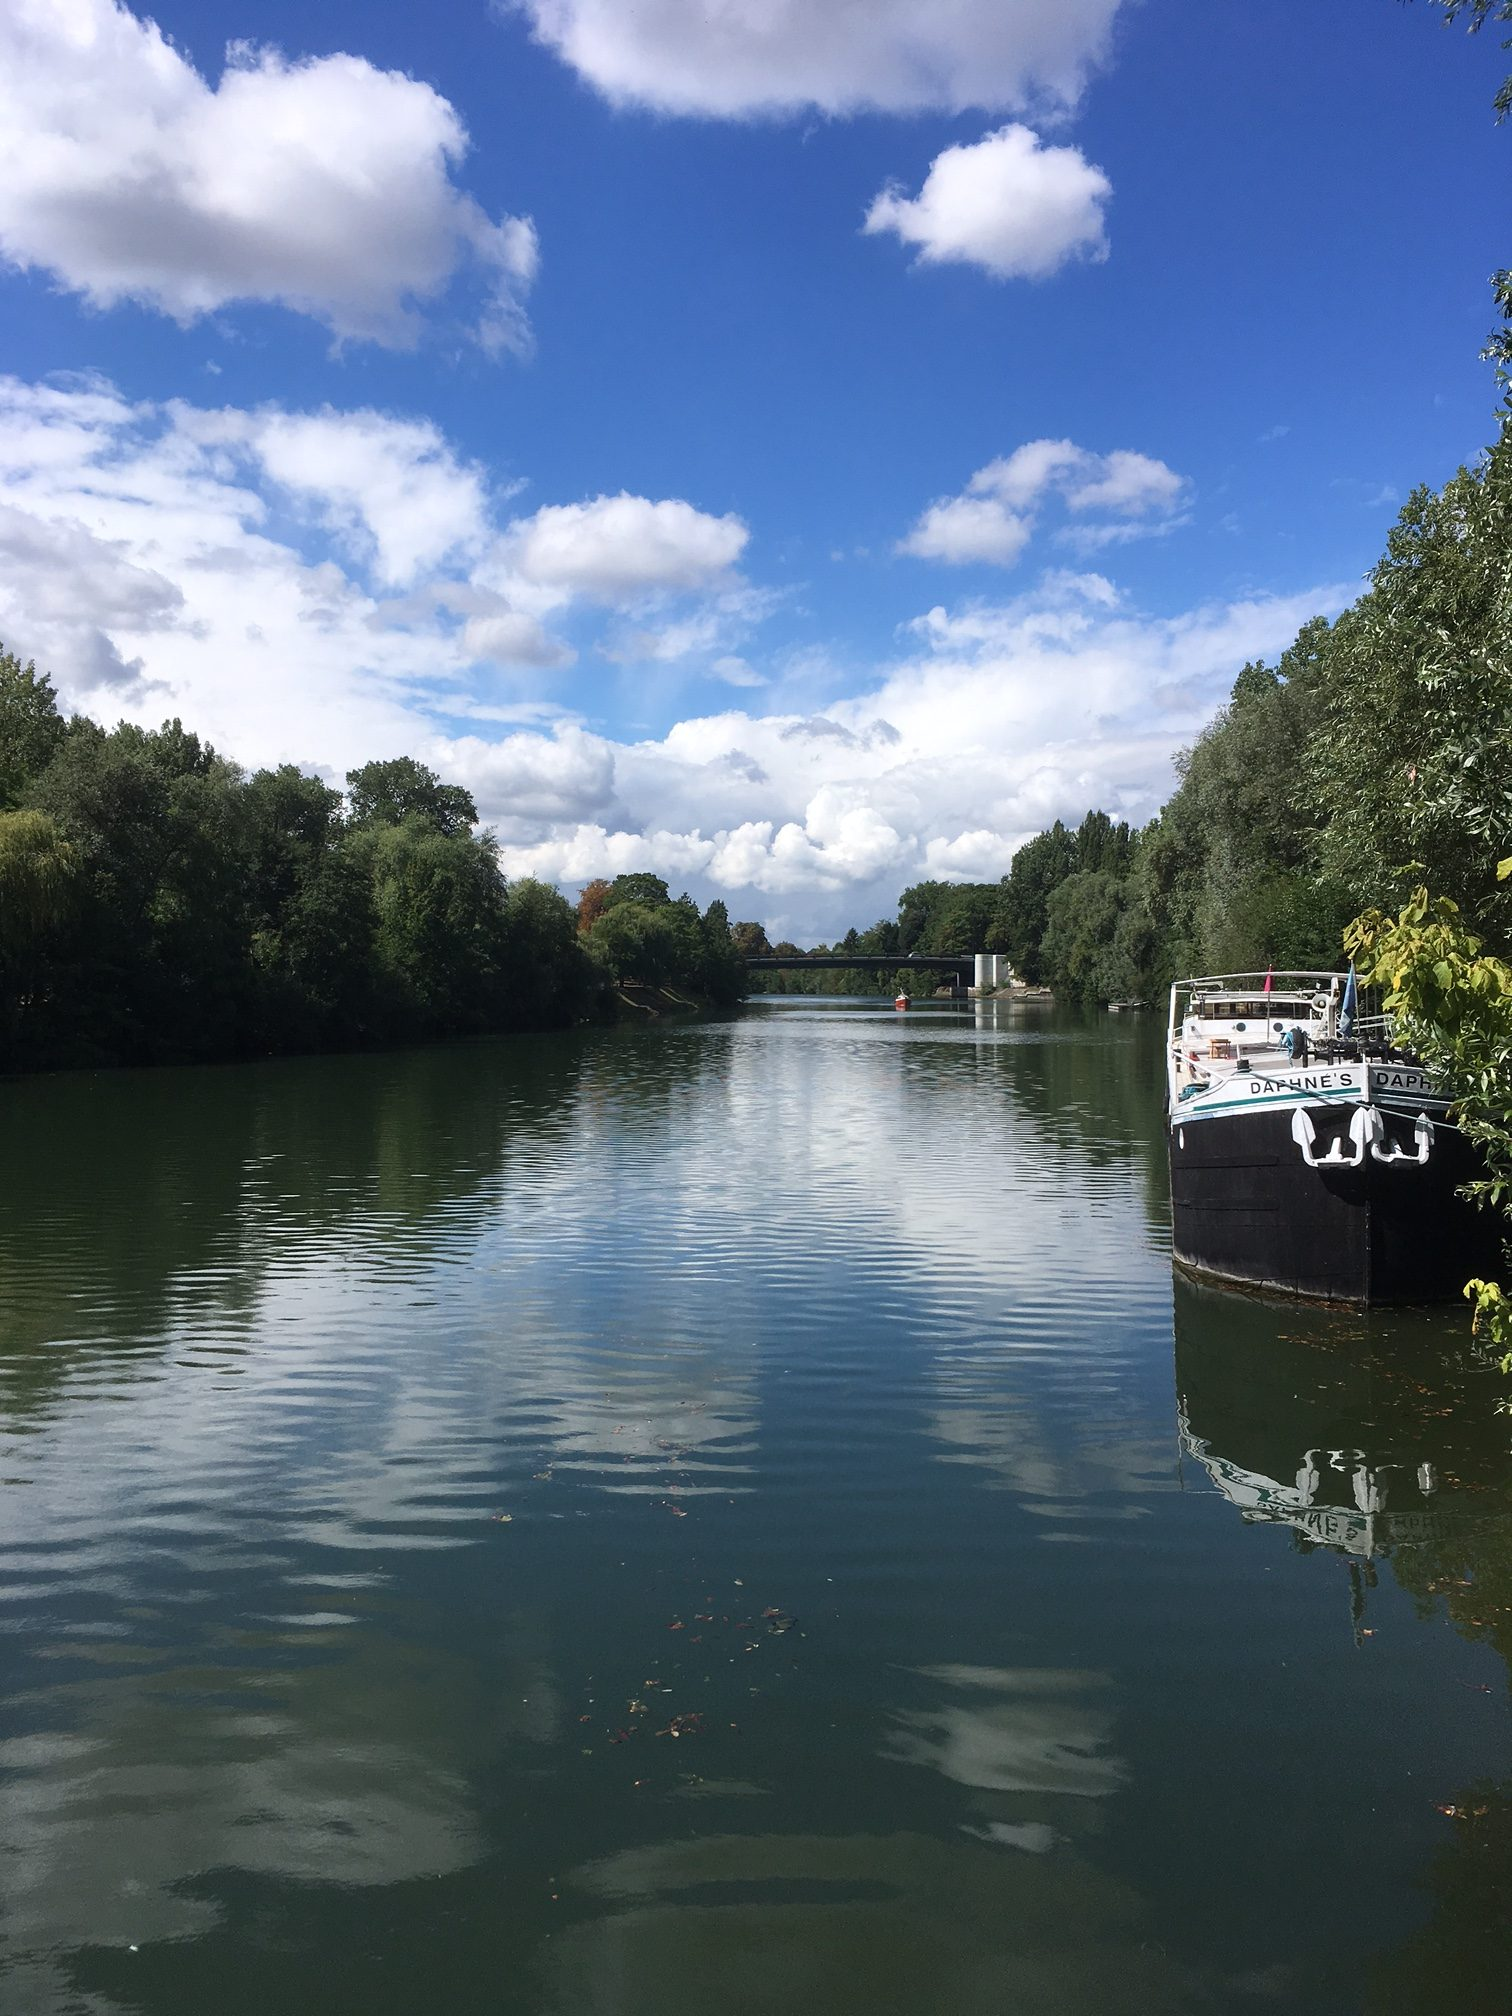 Ready to go: the Péniche daphne's awaits you on the Oise